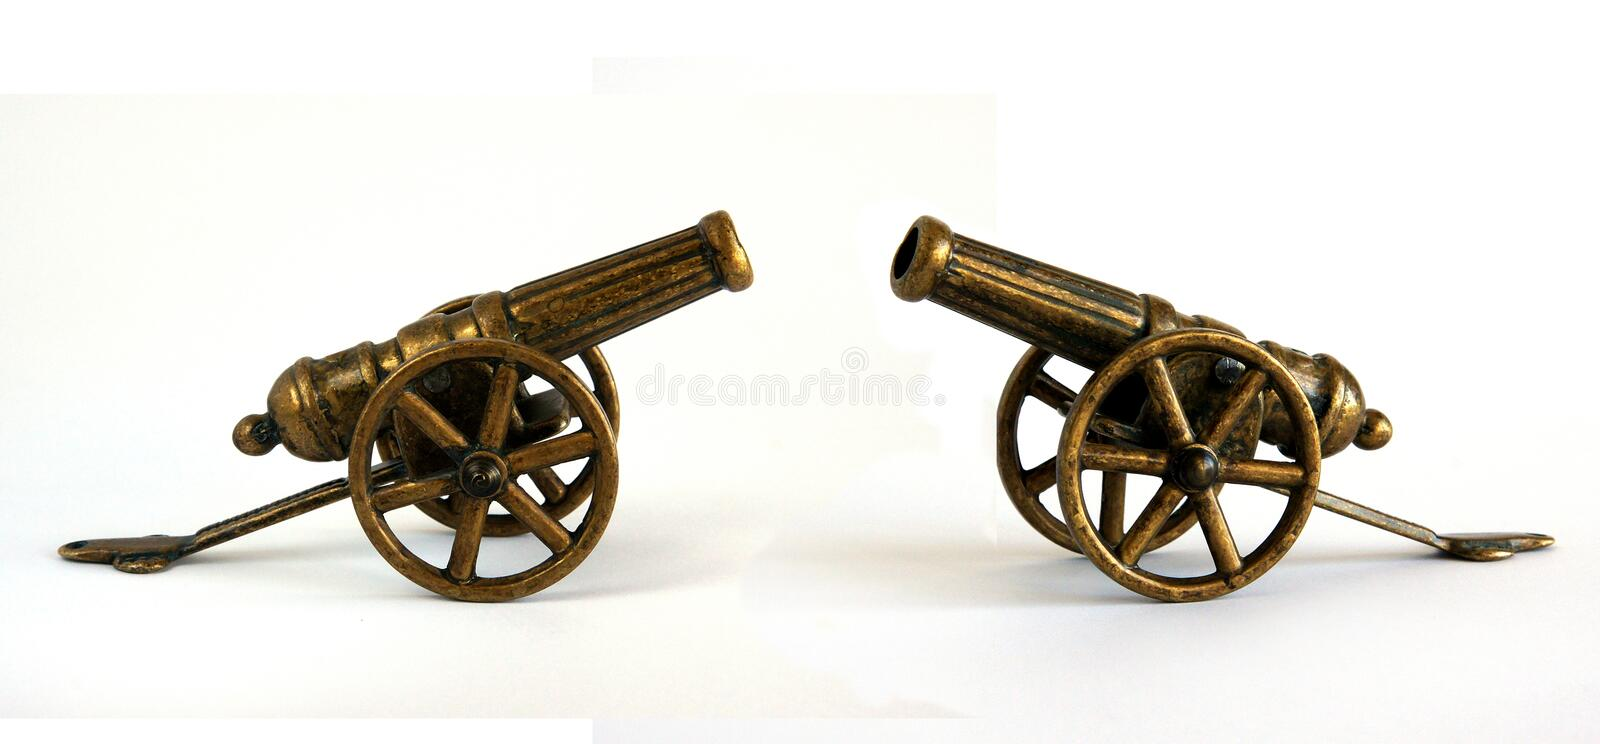 Antique bronze miniature cannon stock photos